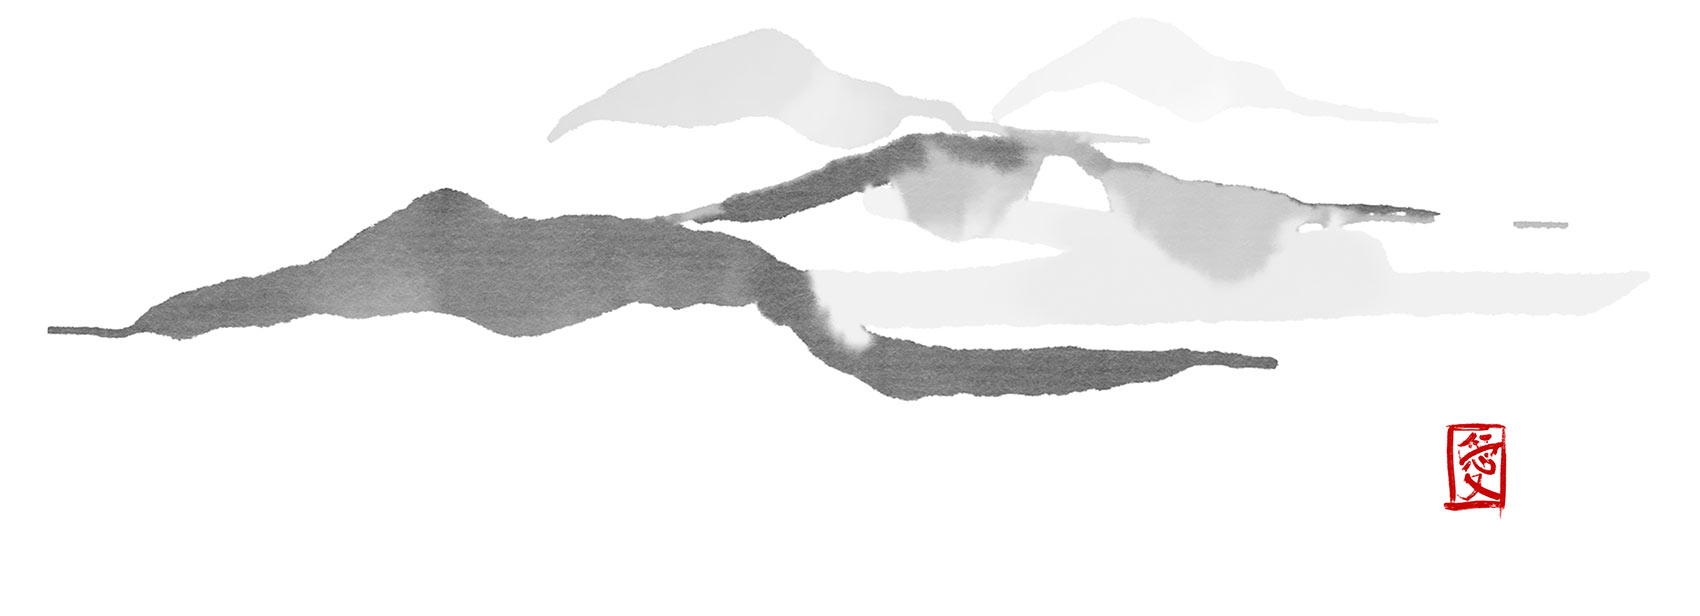 Ink painting of mountains